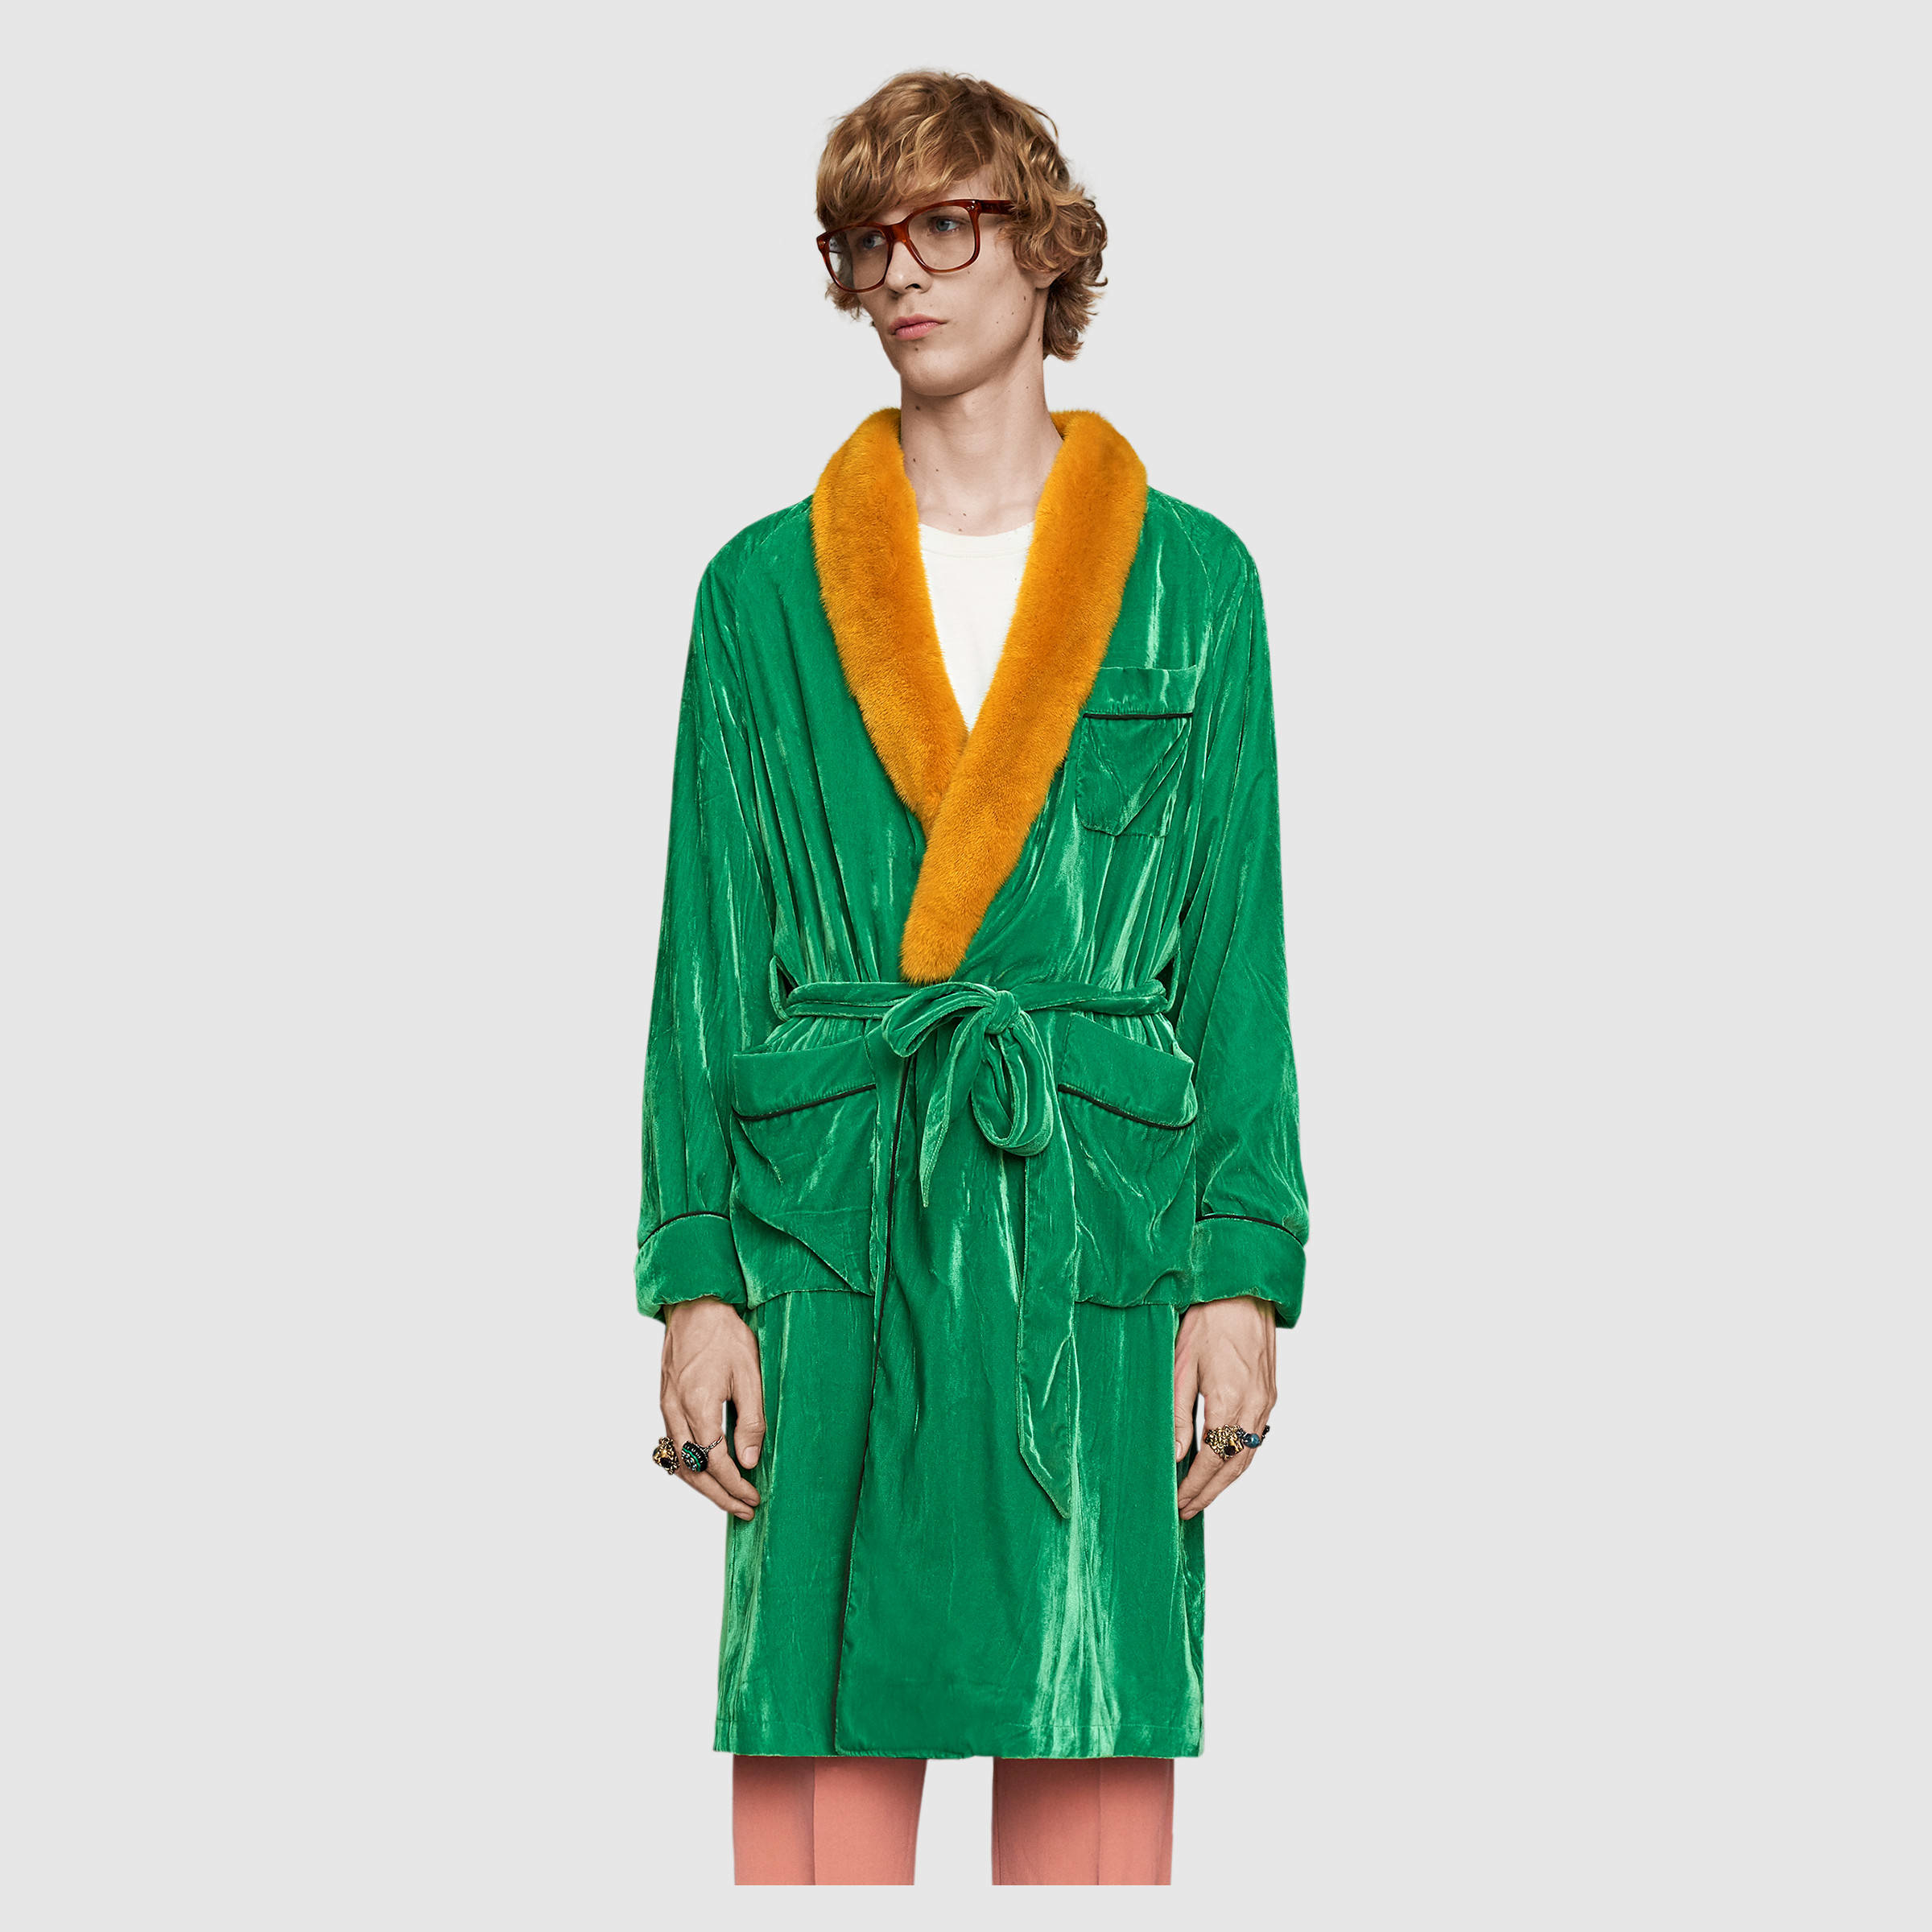 Men S Dressing Gowns: Gucci Embroidered Velvet Dressing Gown For Men